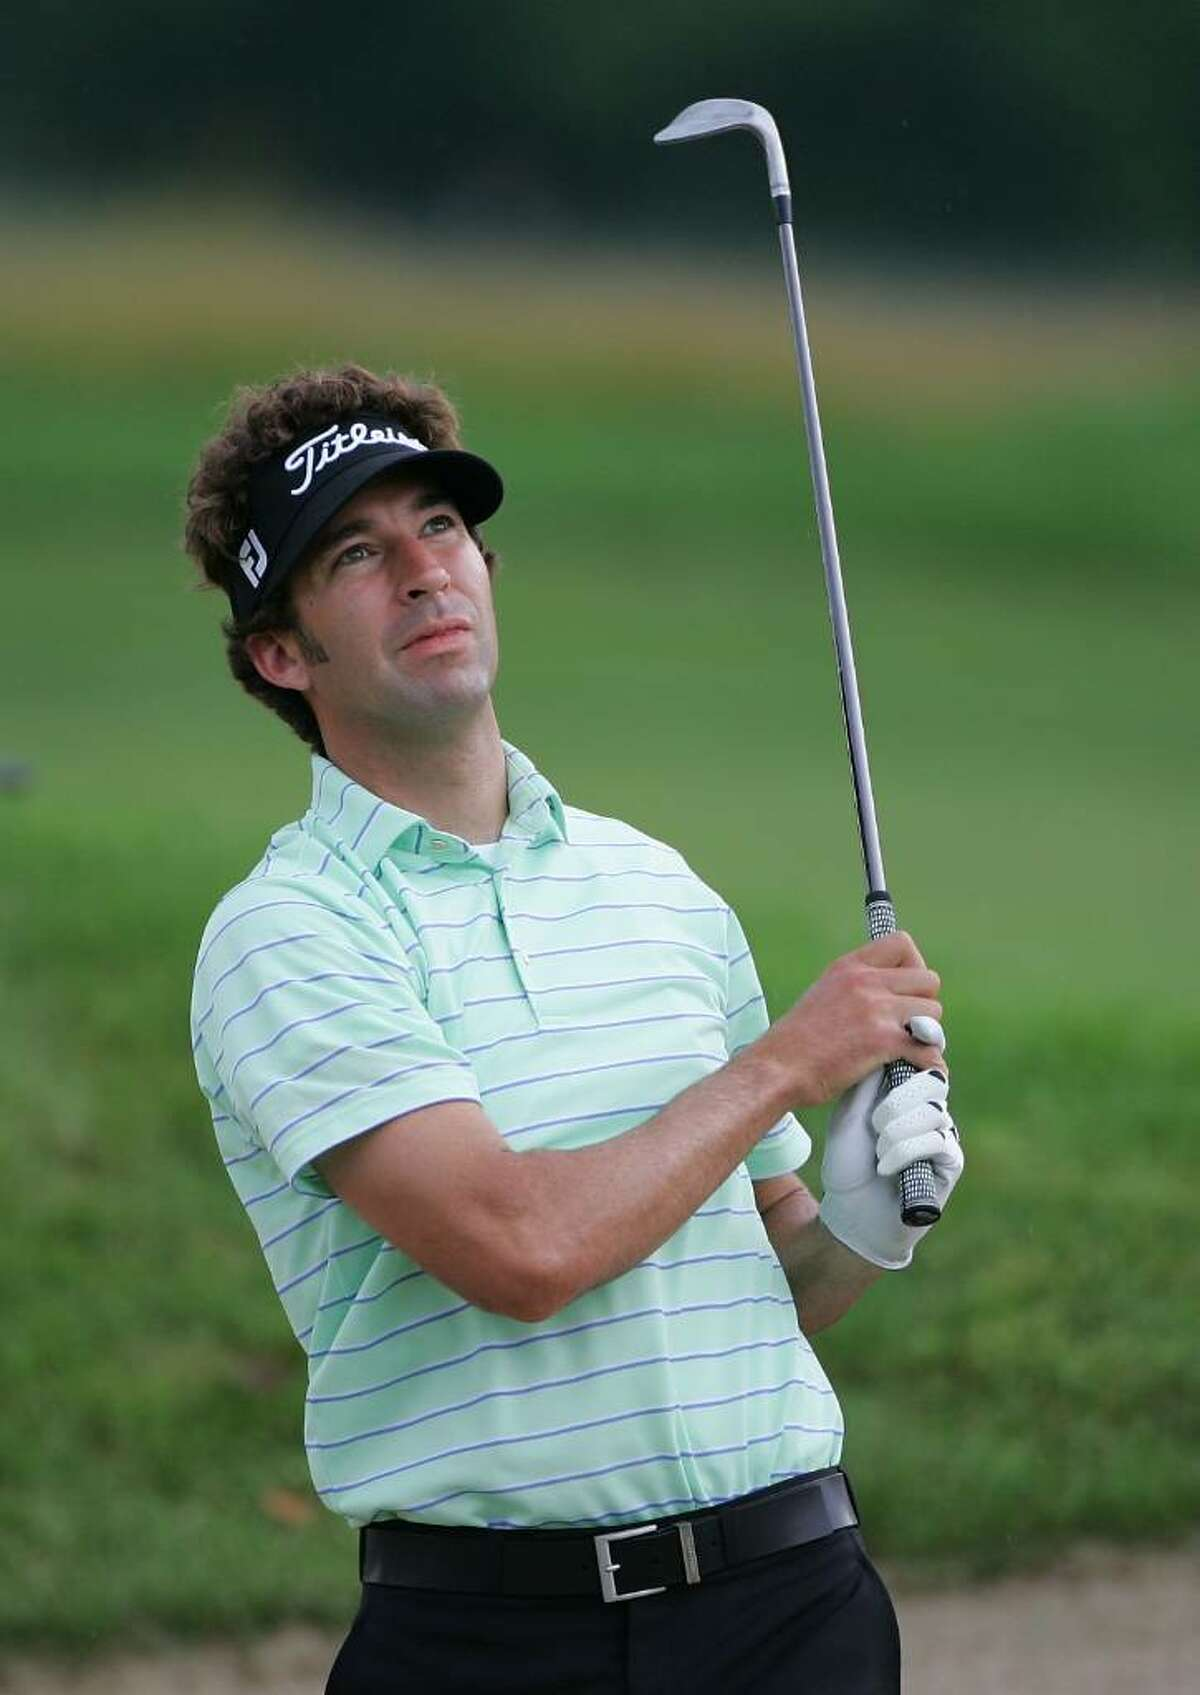 CROMWELL, CT - JUNE 24: Michael Letzig watches his shot during the first round of the Travelers Championship held at TPC River Highlands on June 24, 2010 in Cromwell, Connecticut. (Photo by Michael Cohen/Getty Images) *** Local Caption *** Michael Letzig